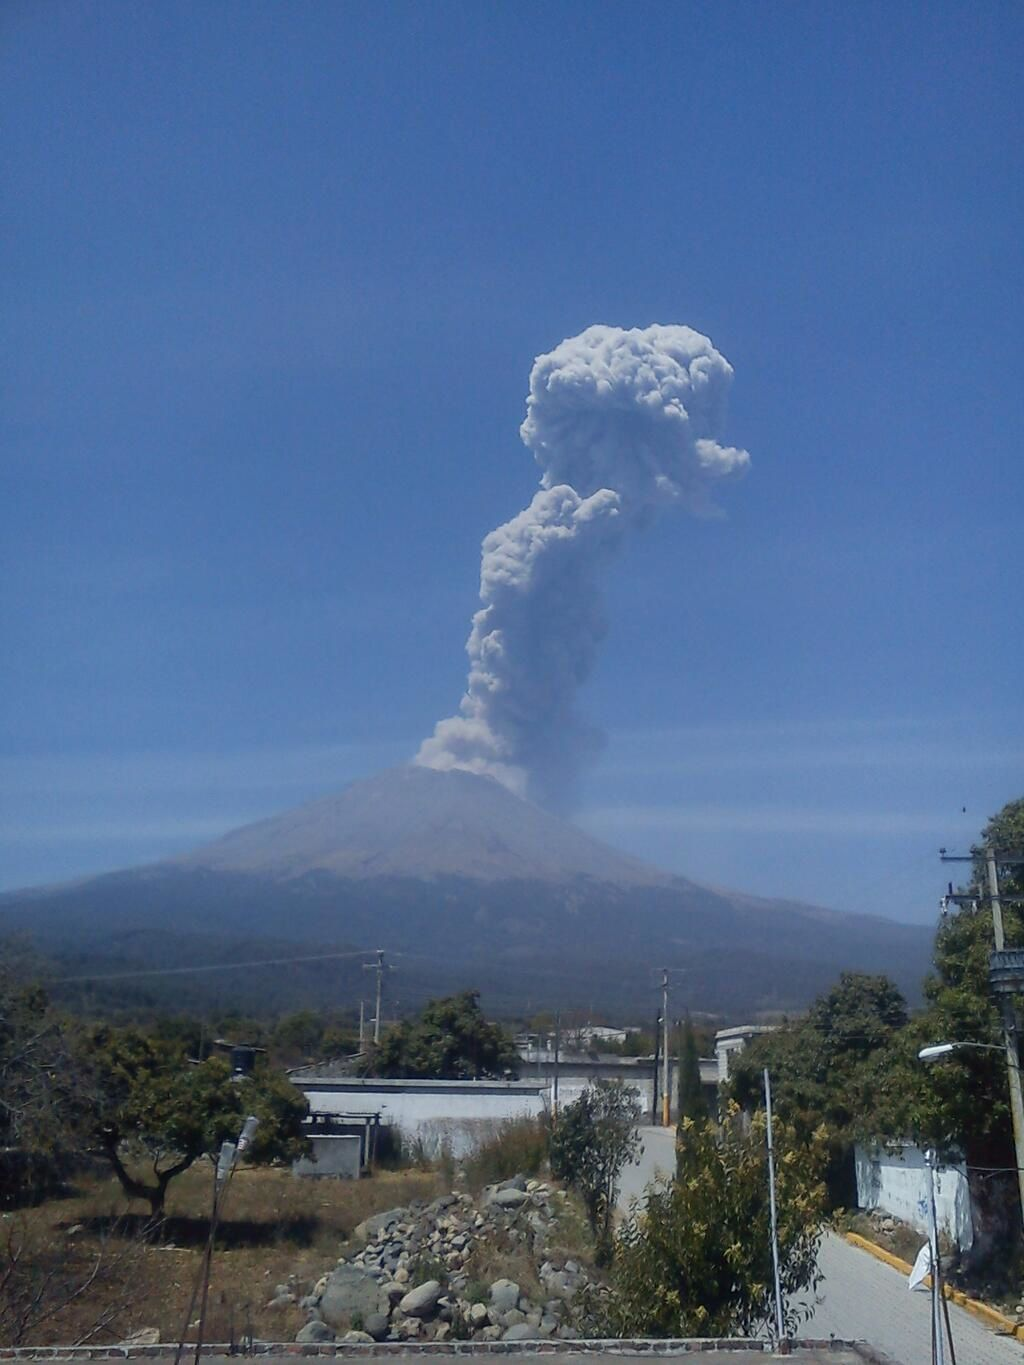 Popocatepetl - 21/02/2014 - photo Ricardo Flores via Twitter